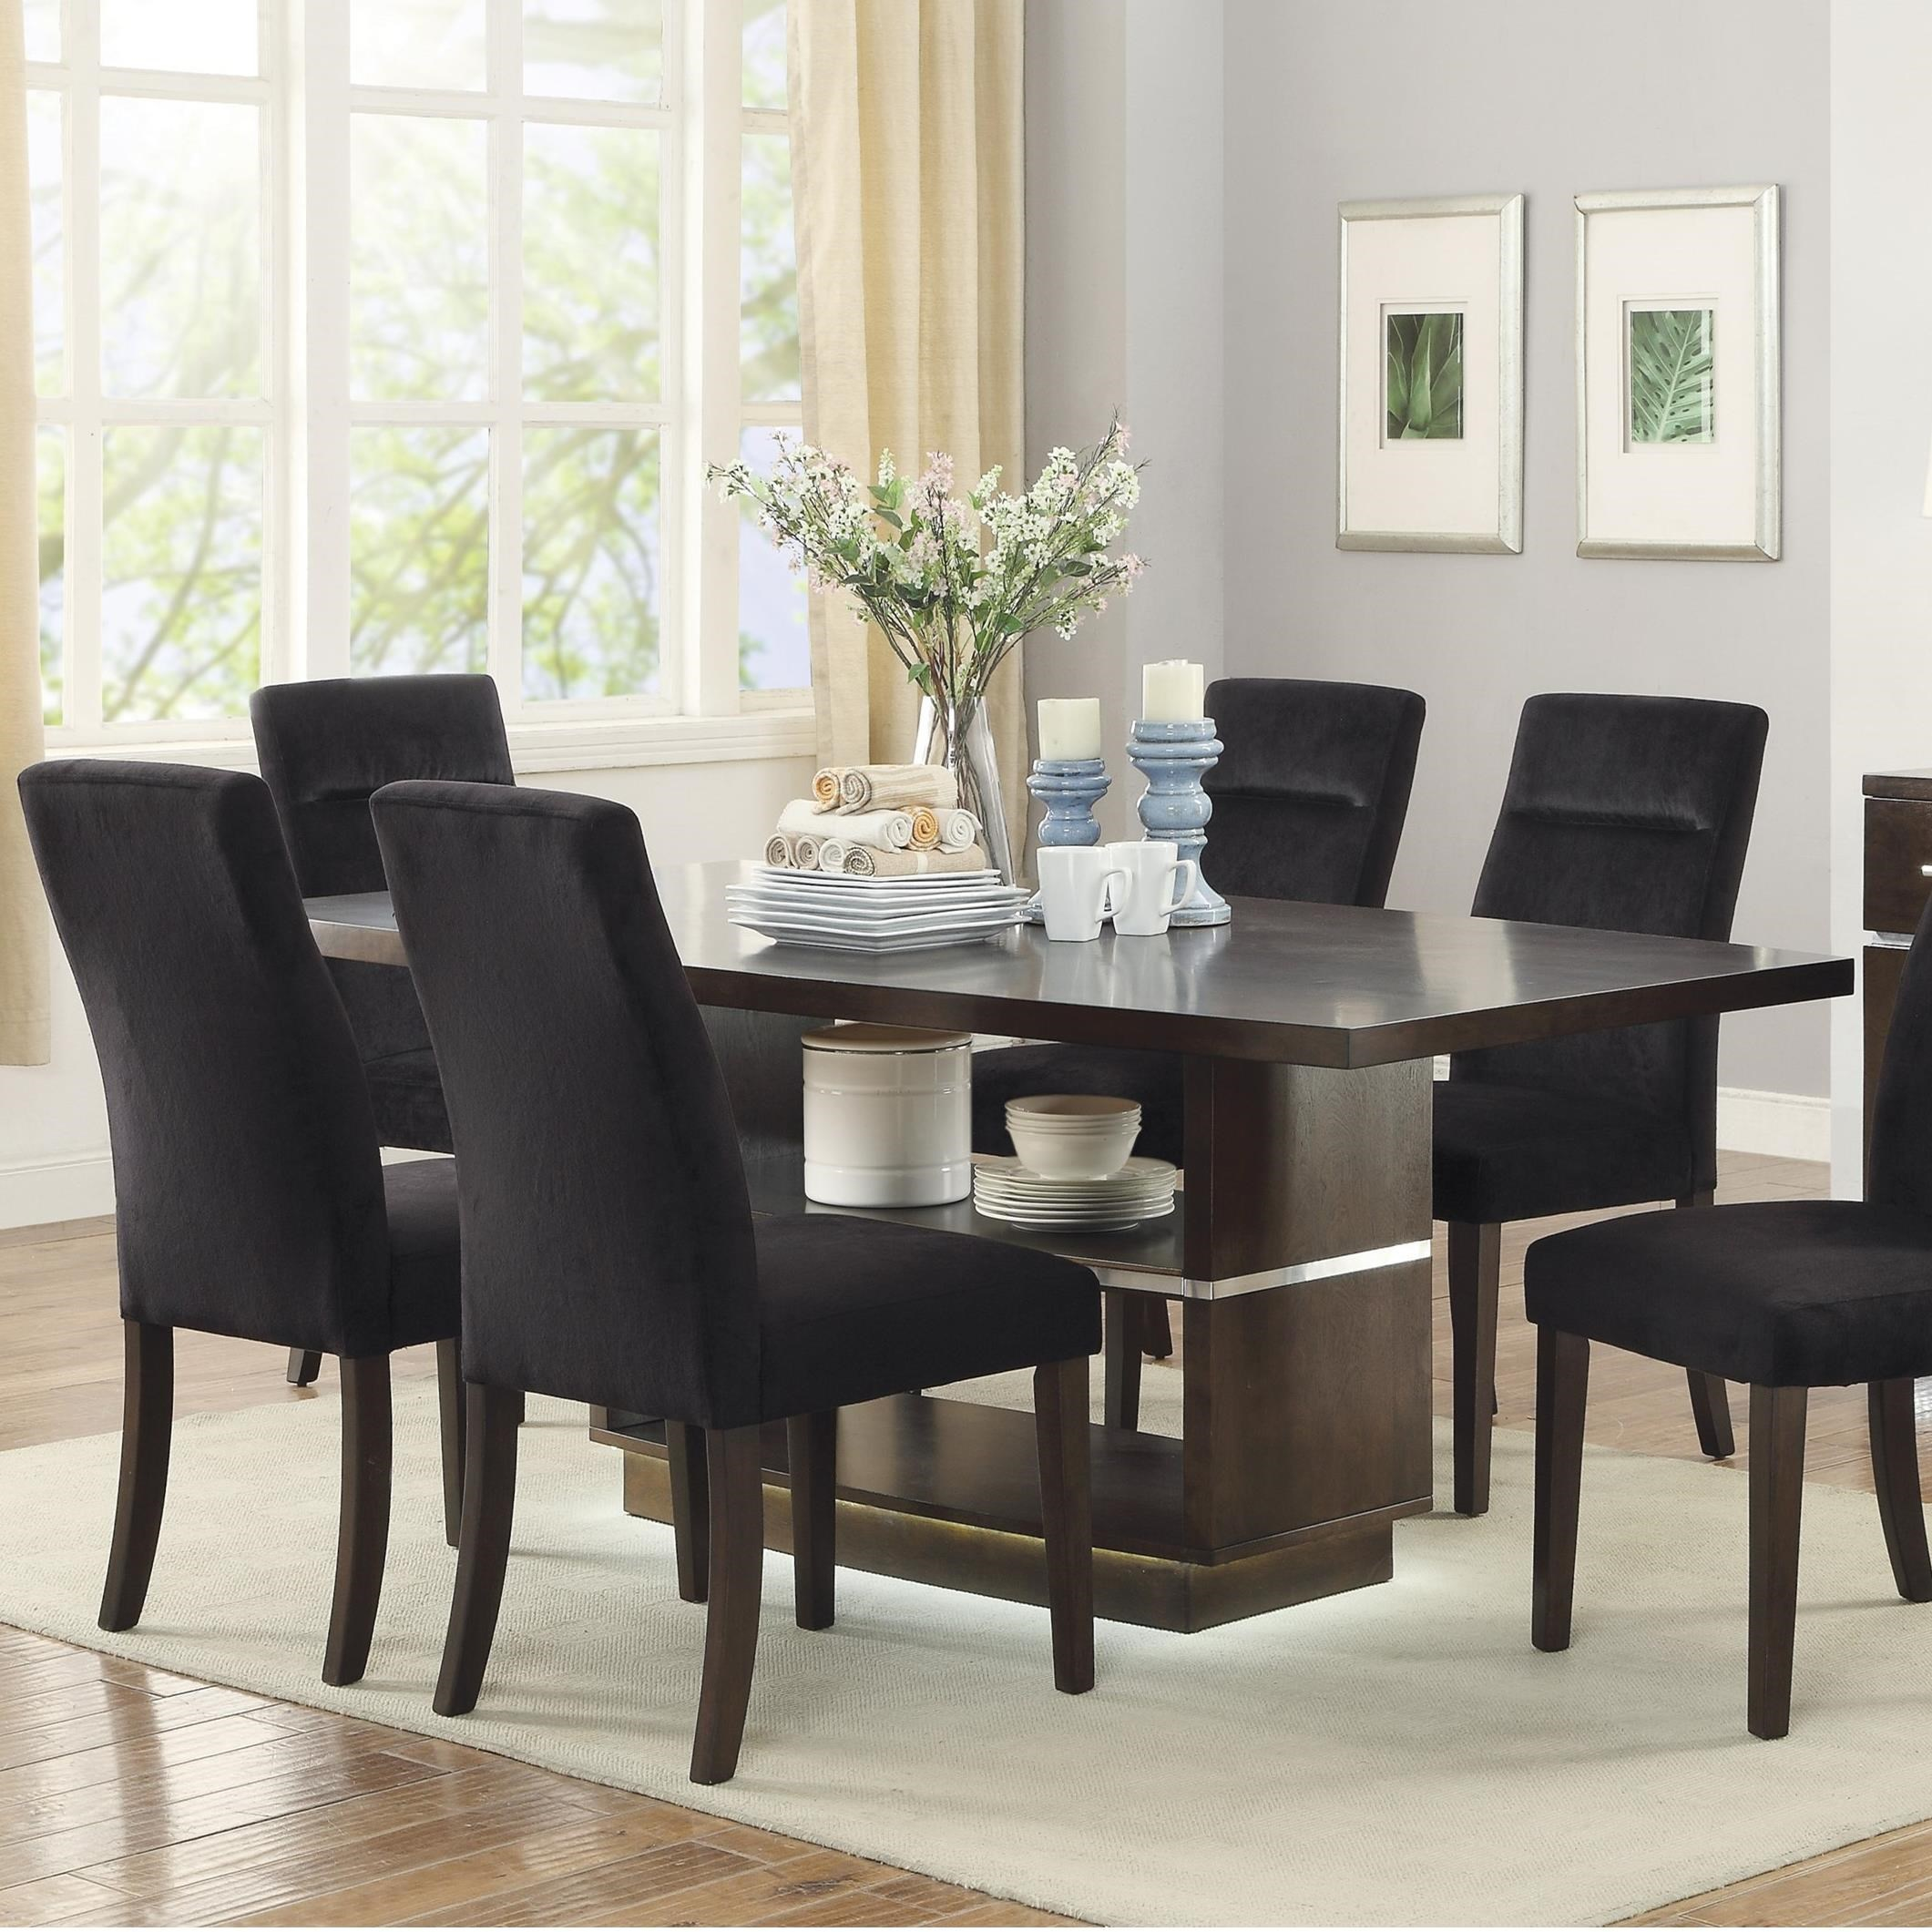 Coaster Lincoln 106891 Contemporary Dining Table With Led Lighting Dunk Bright Furniture